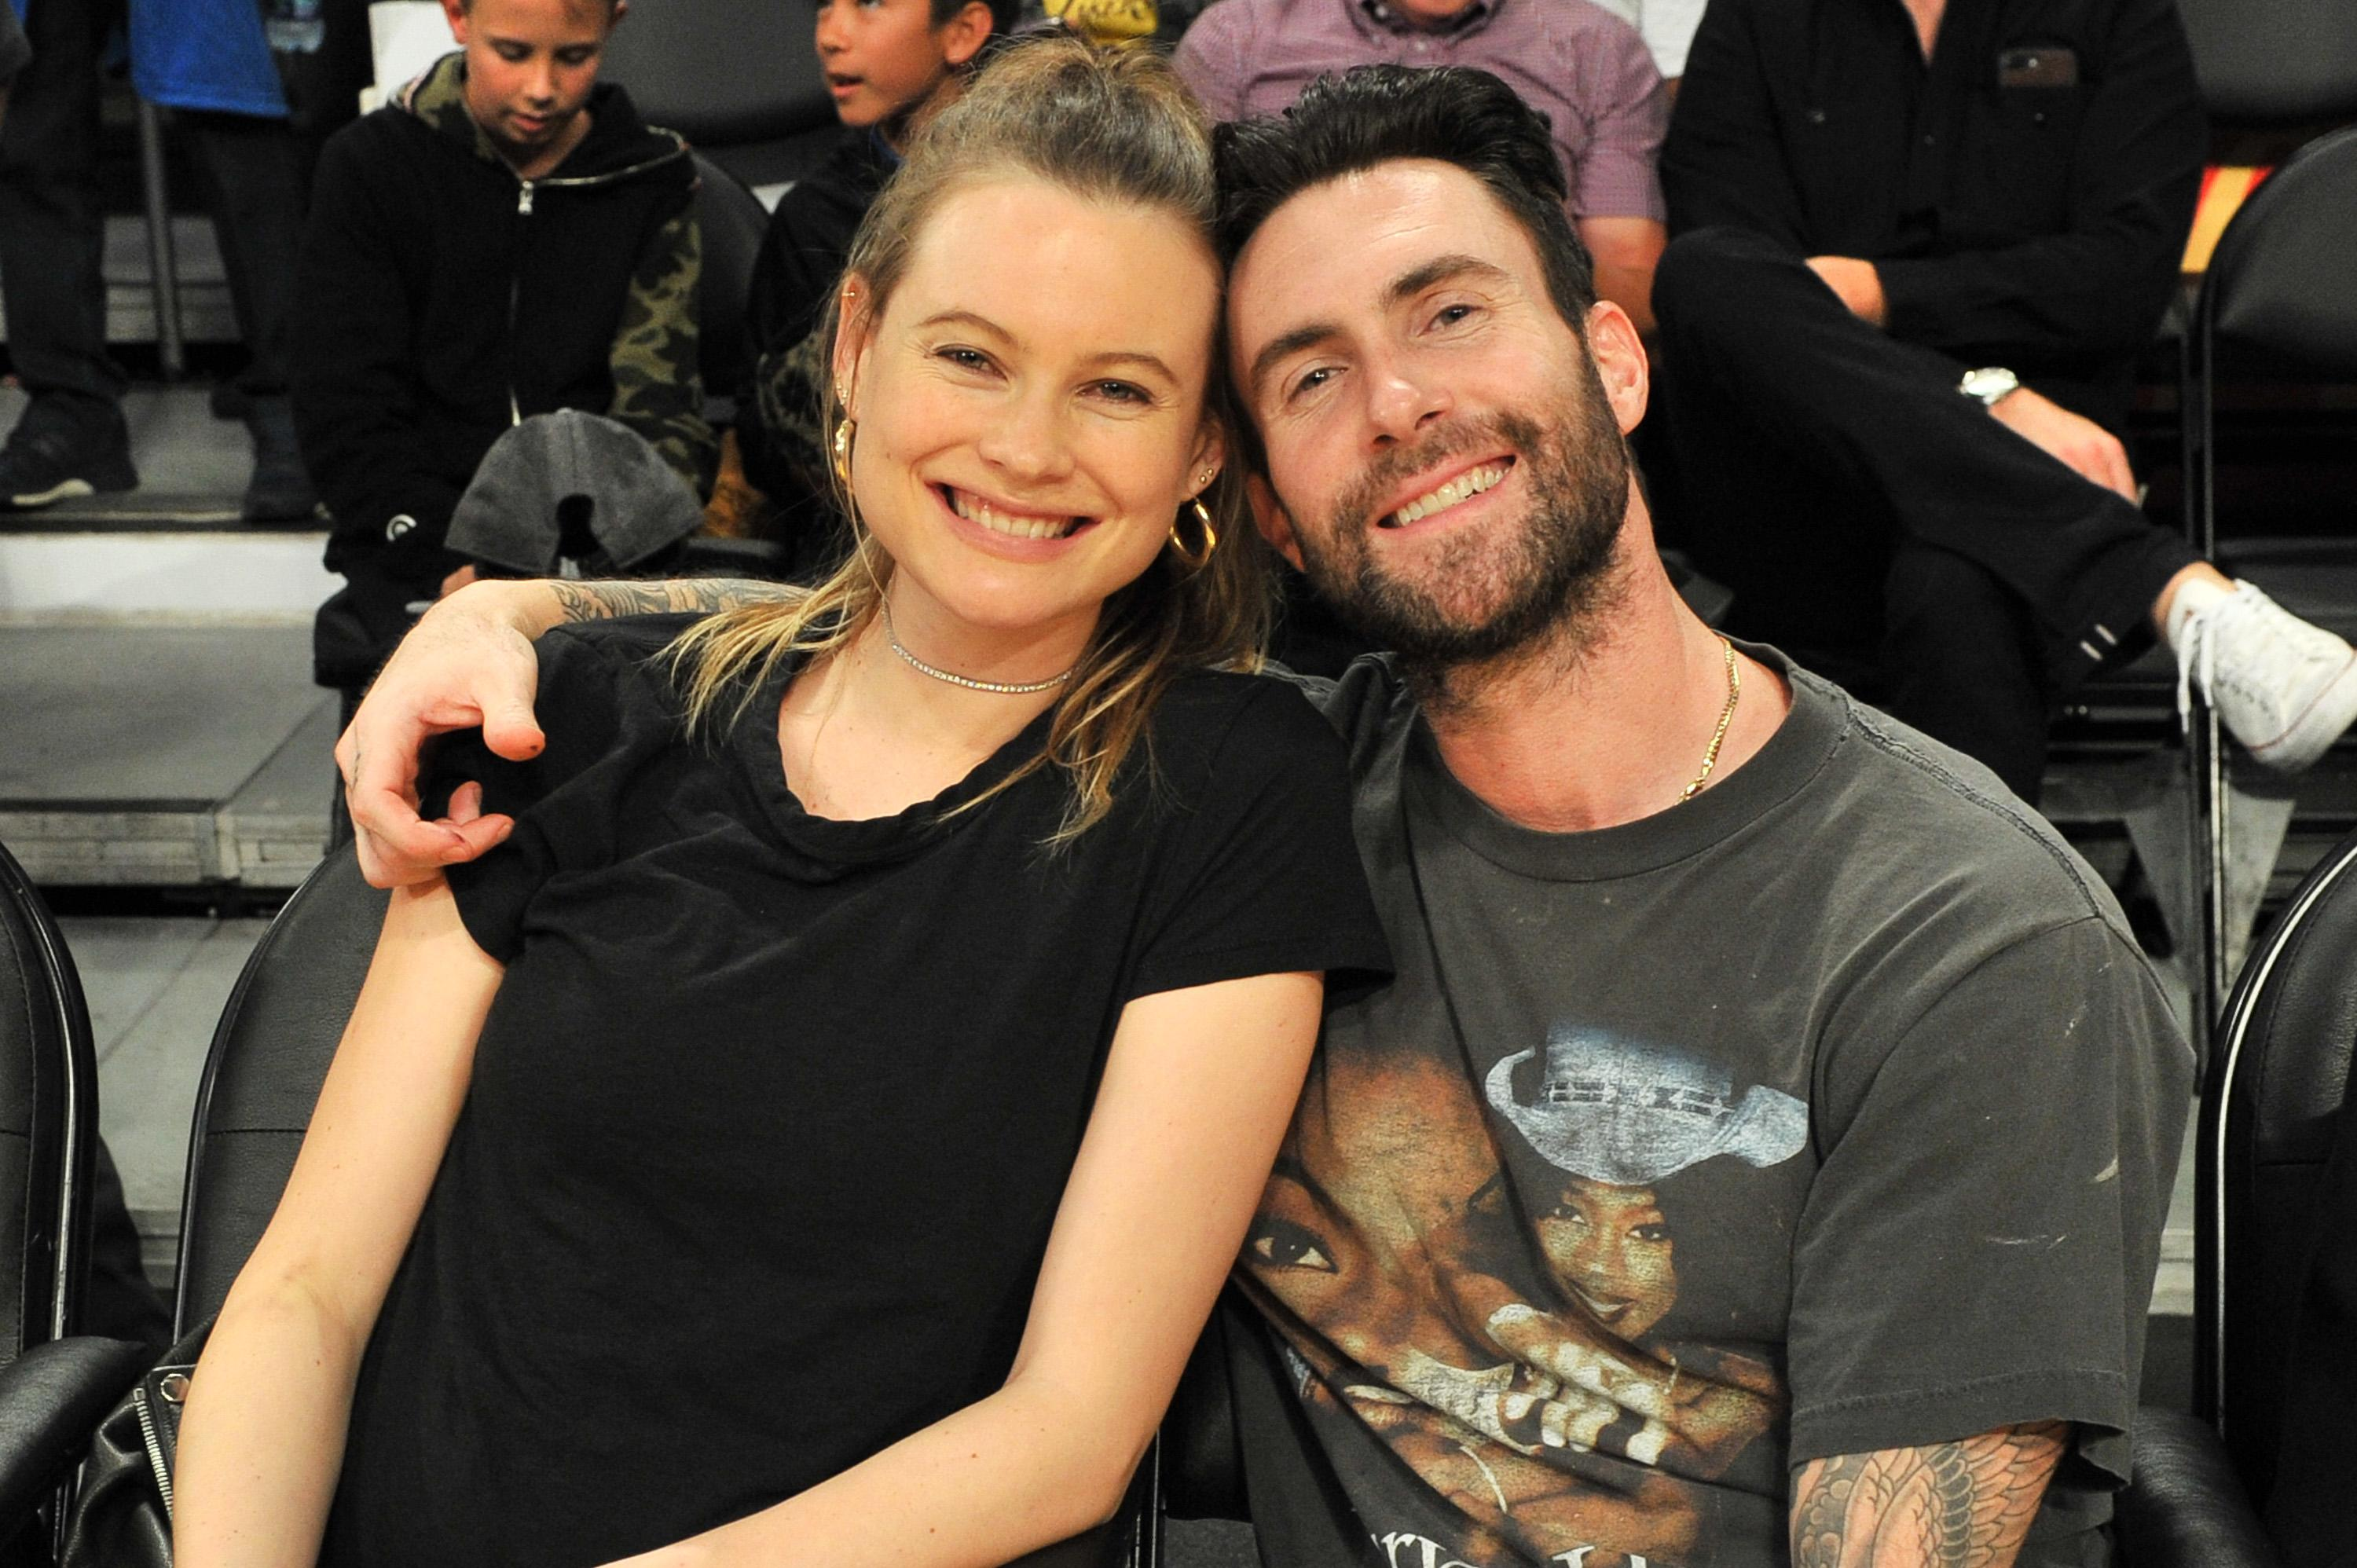 Adam levine and behati prinsloo have welcomed their second child behati prinsloo and singer adam levine attend a basketball game between the los angeles lakers and the philadelphia 76ers at staples center on november 15 nvjuhfo Images